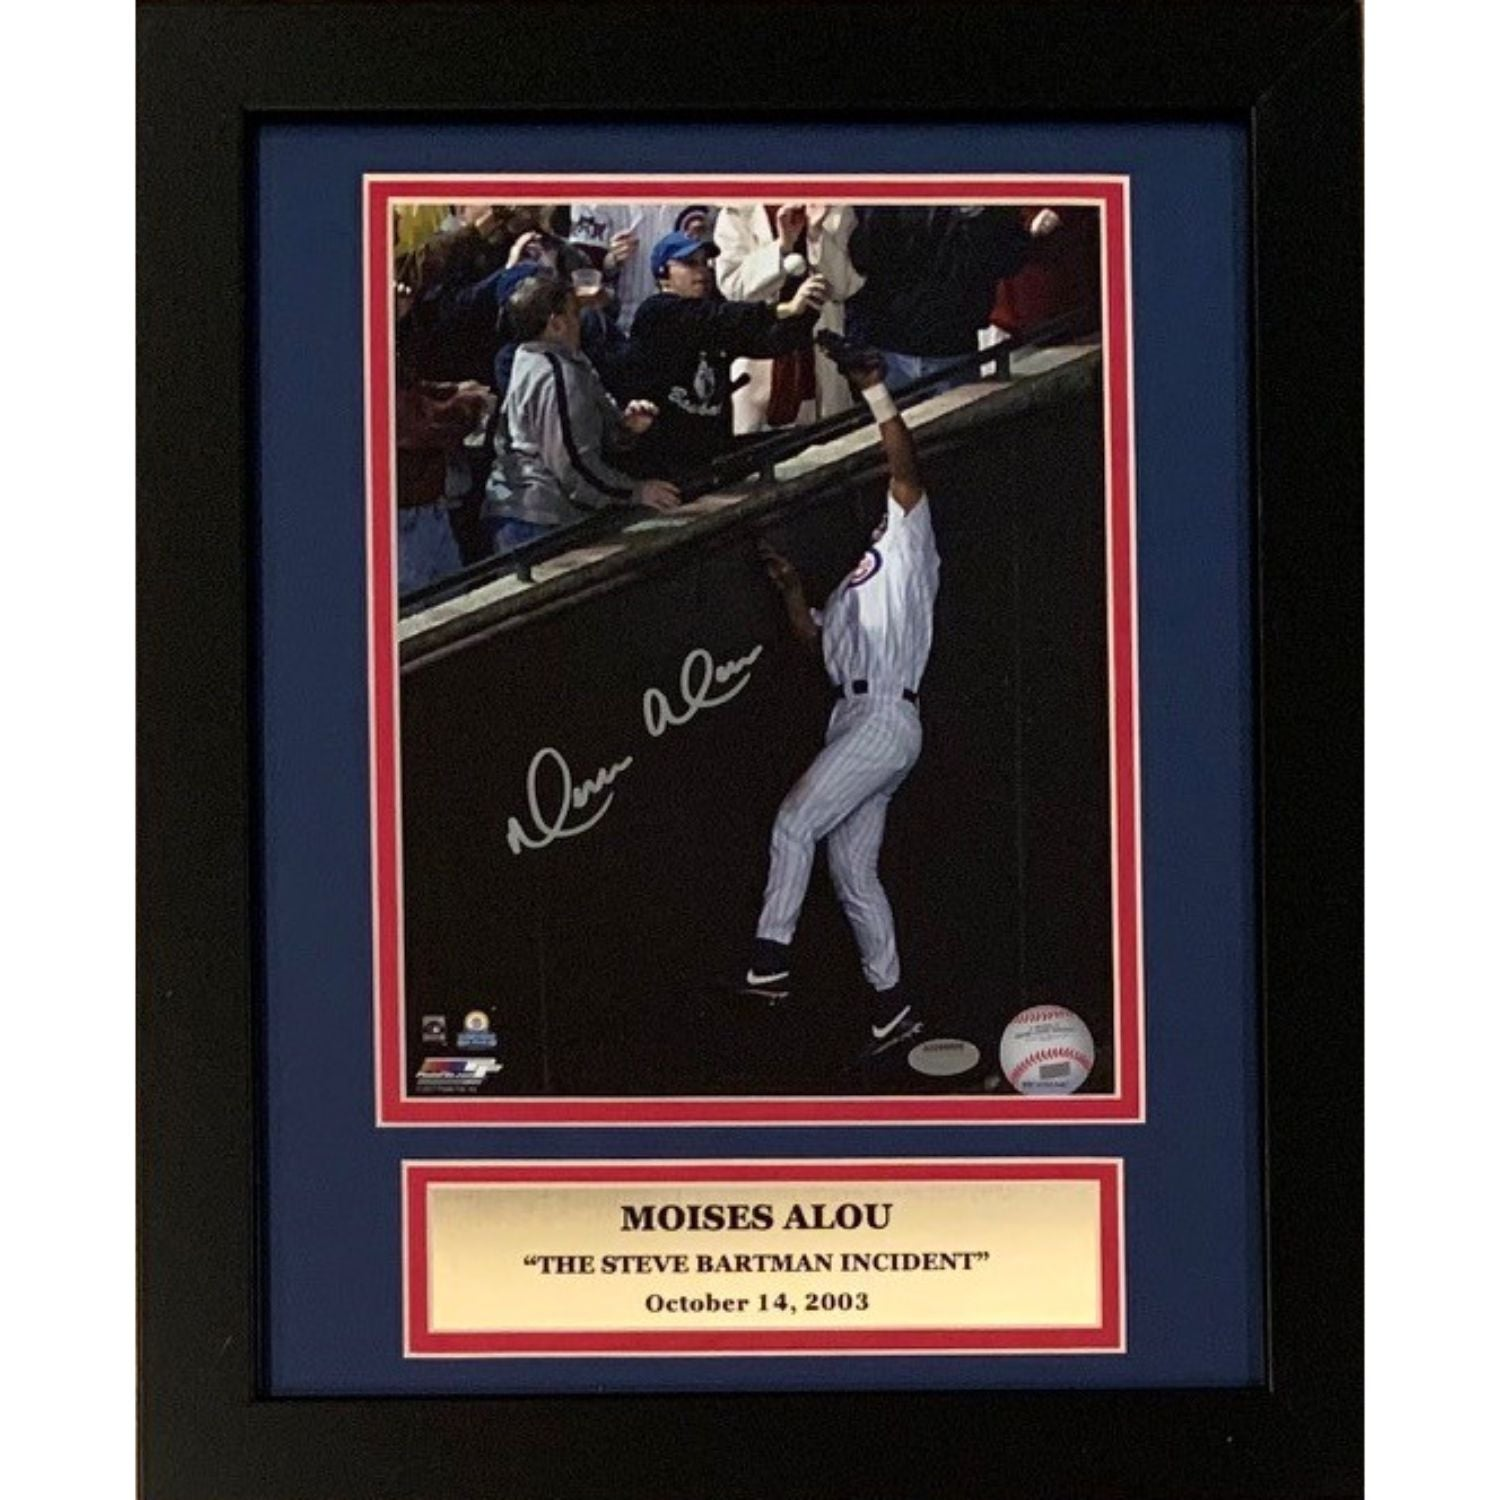 Moises Alou Chicago Cubs Autographed Steve Bartman Signed 8x10 Baseball Framed Photo Schwartz Sports COA-Powers Sports Memorabilia